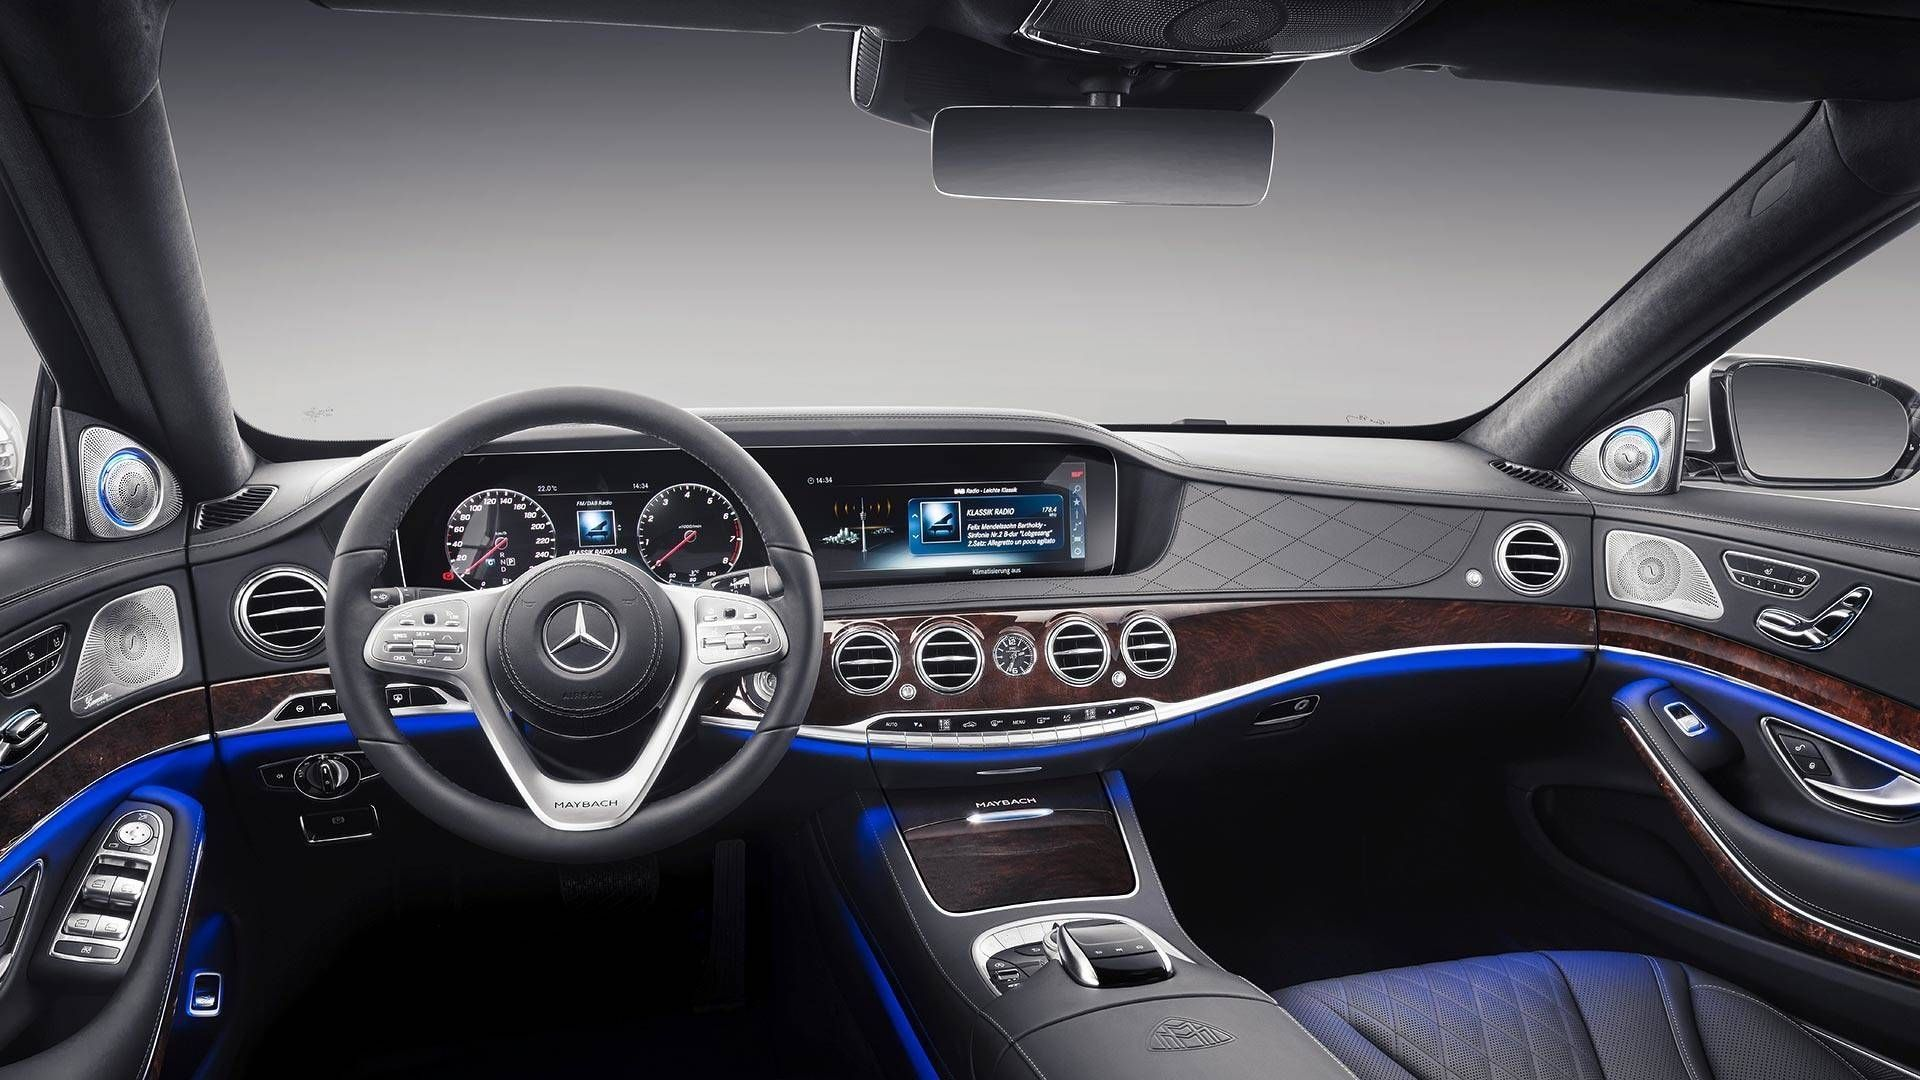 The 2019 Mercedes Benz S550 Spesification Cars Review 2019